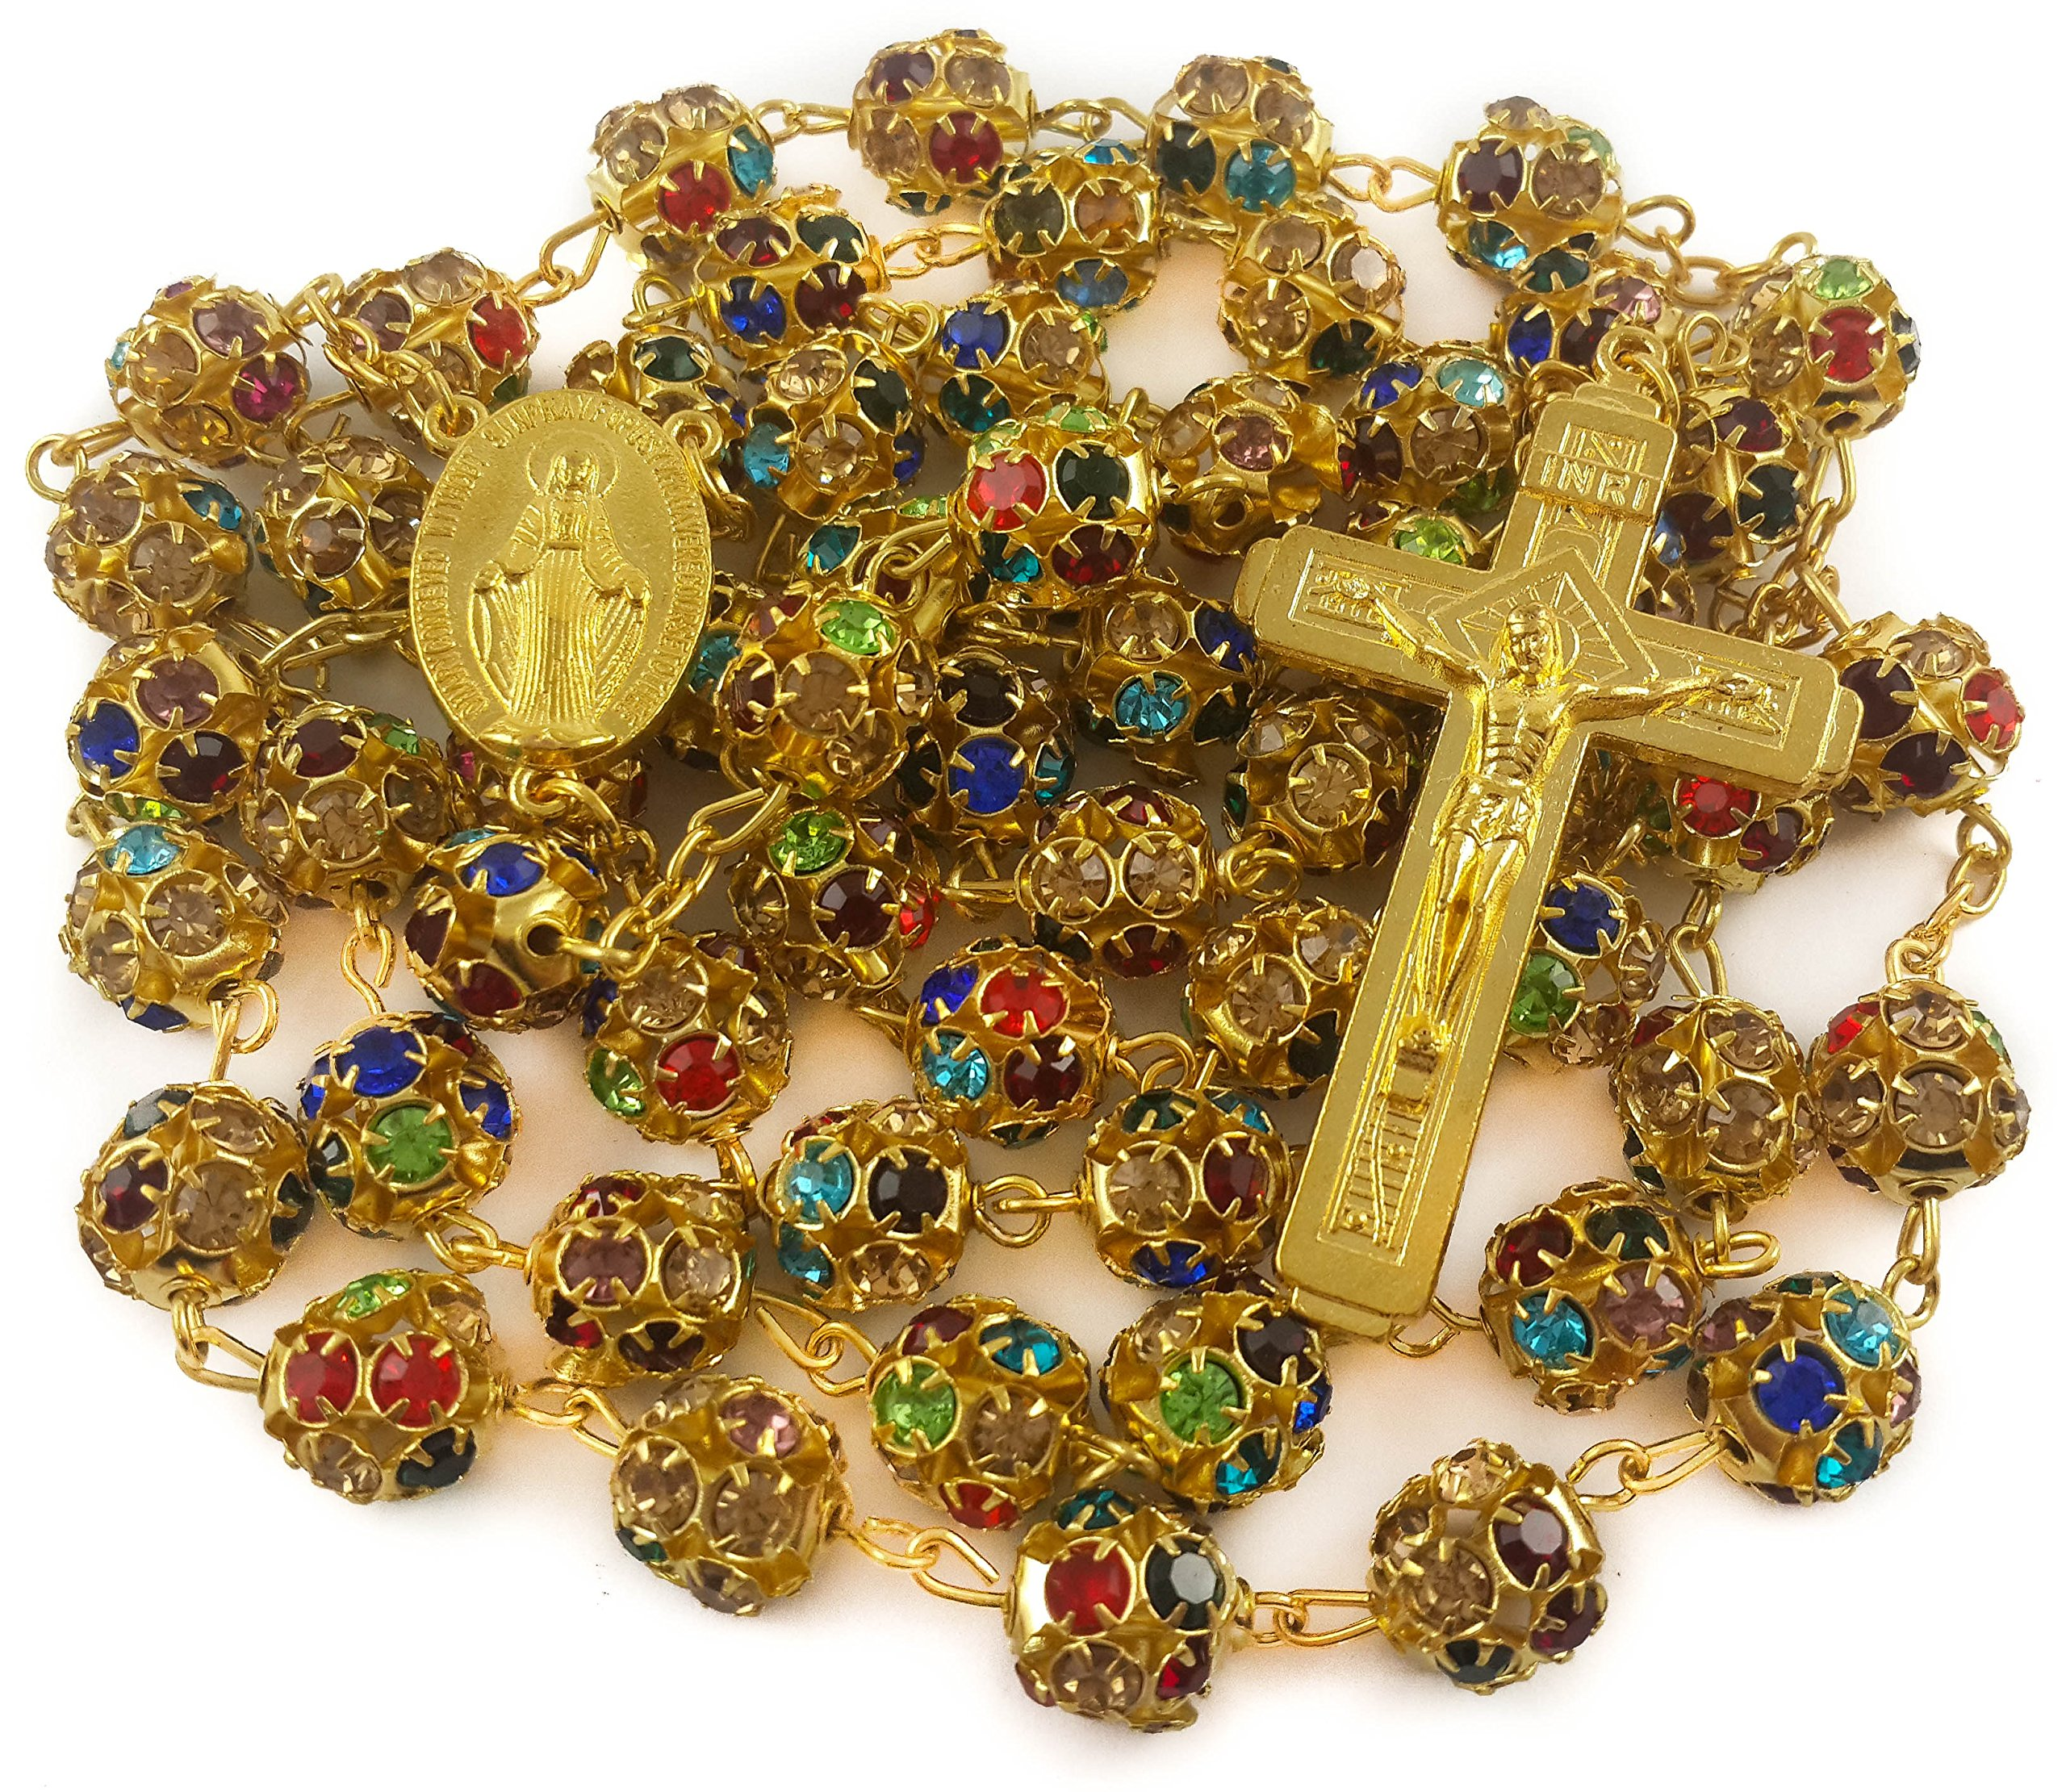 Nazareth Store Multicolor Crystal Zircon Beads Golden Rosary Catholic Colorful Bead Necklace Miraculous Medal Cross, Velvet Bag Case by Nazareth Store